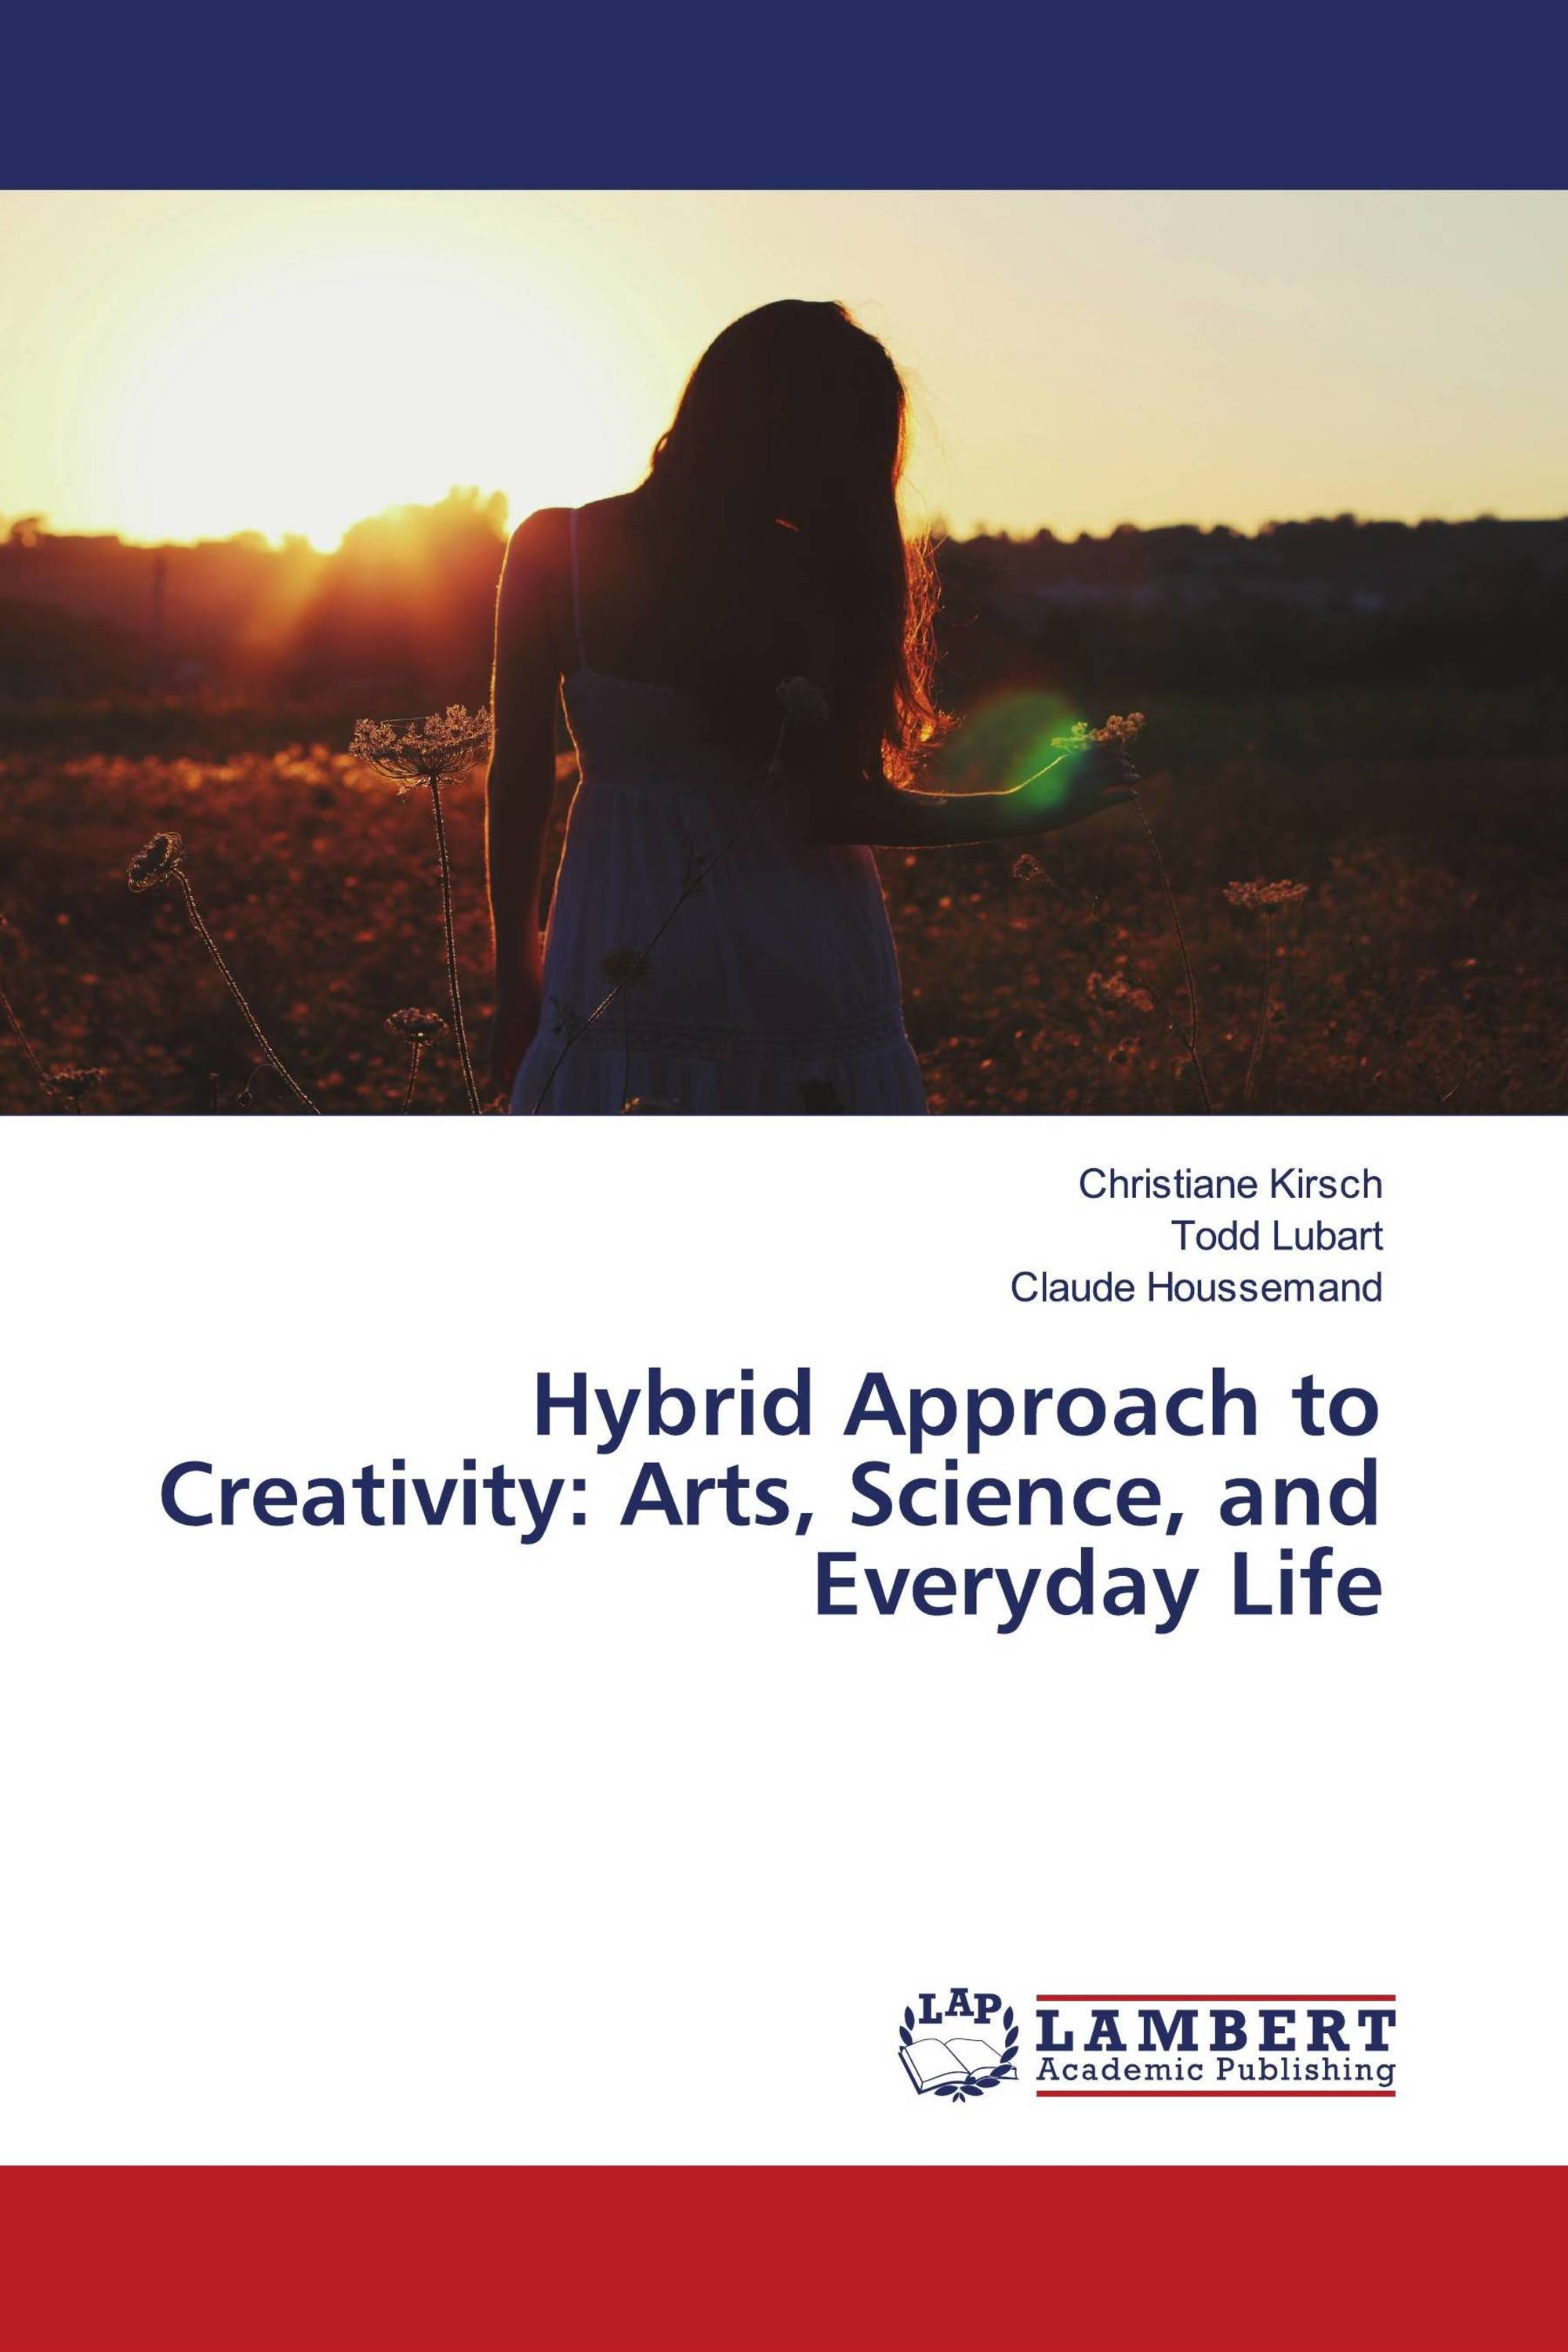 Hybrid Approach to Creativity: Arts, Science and Everyday Life